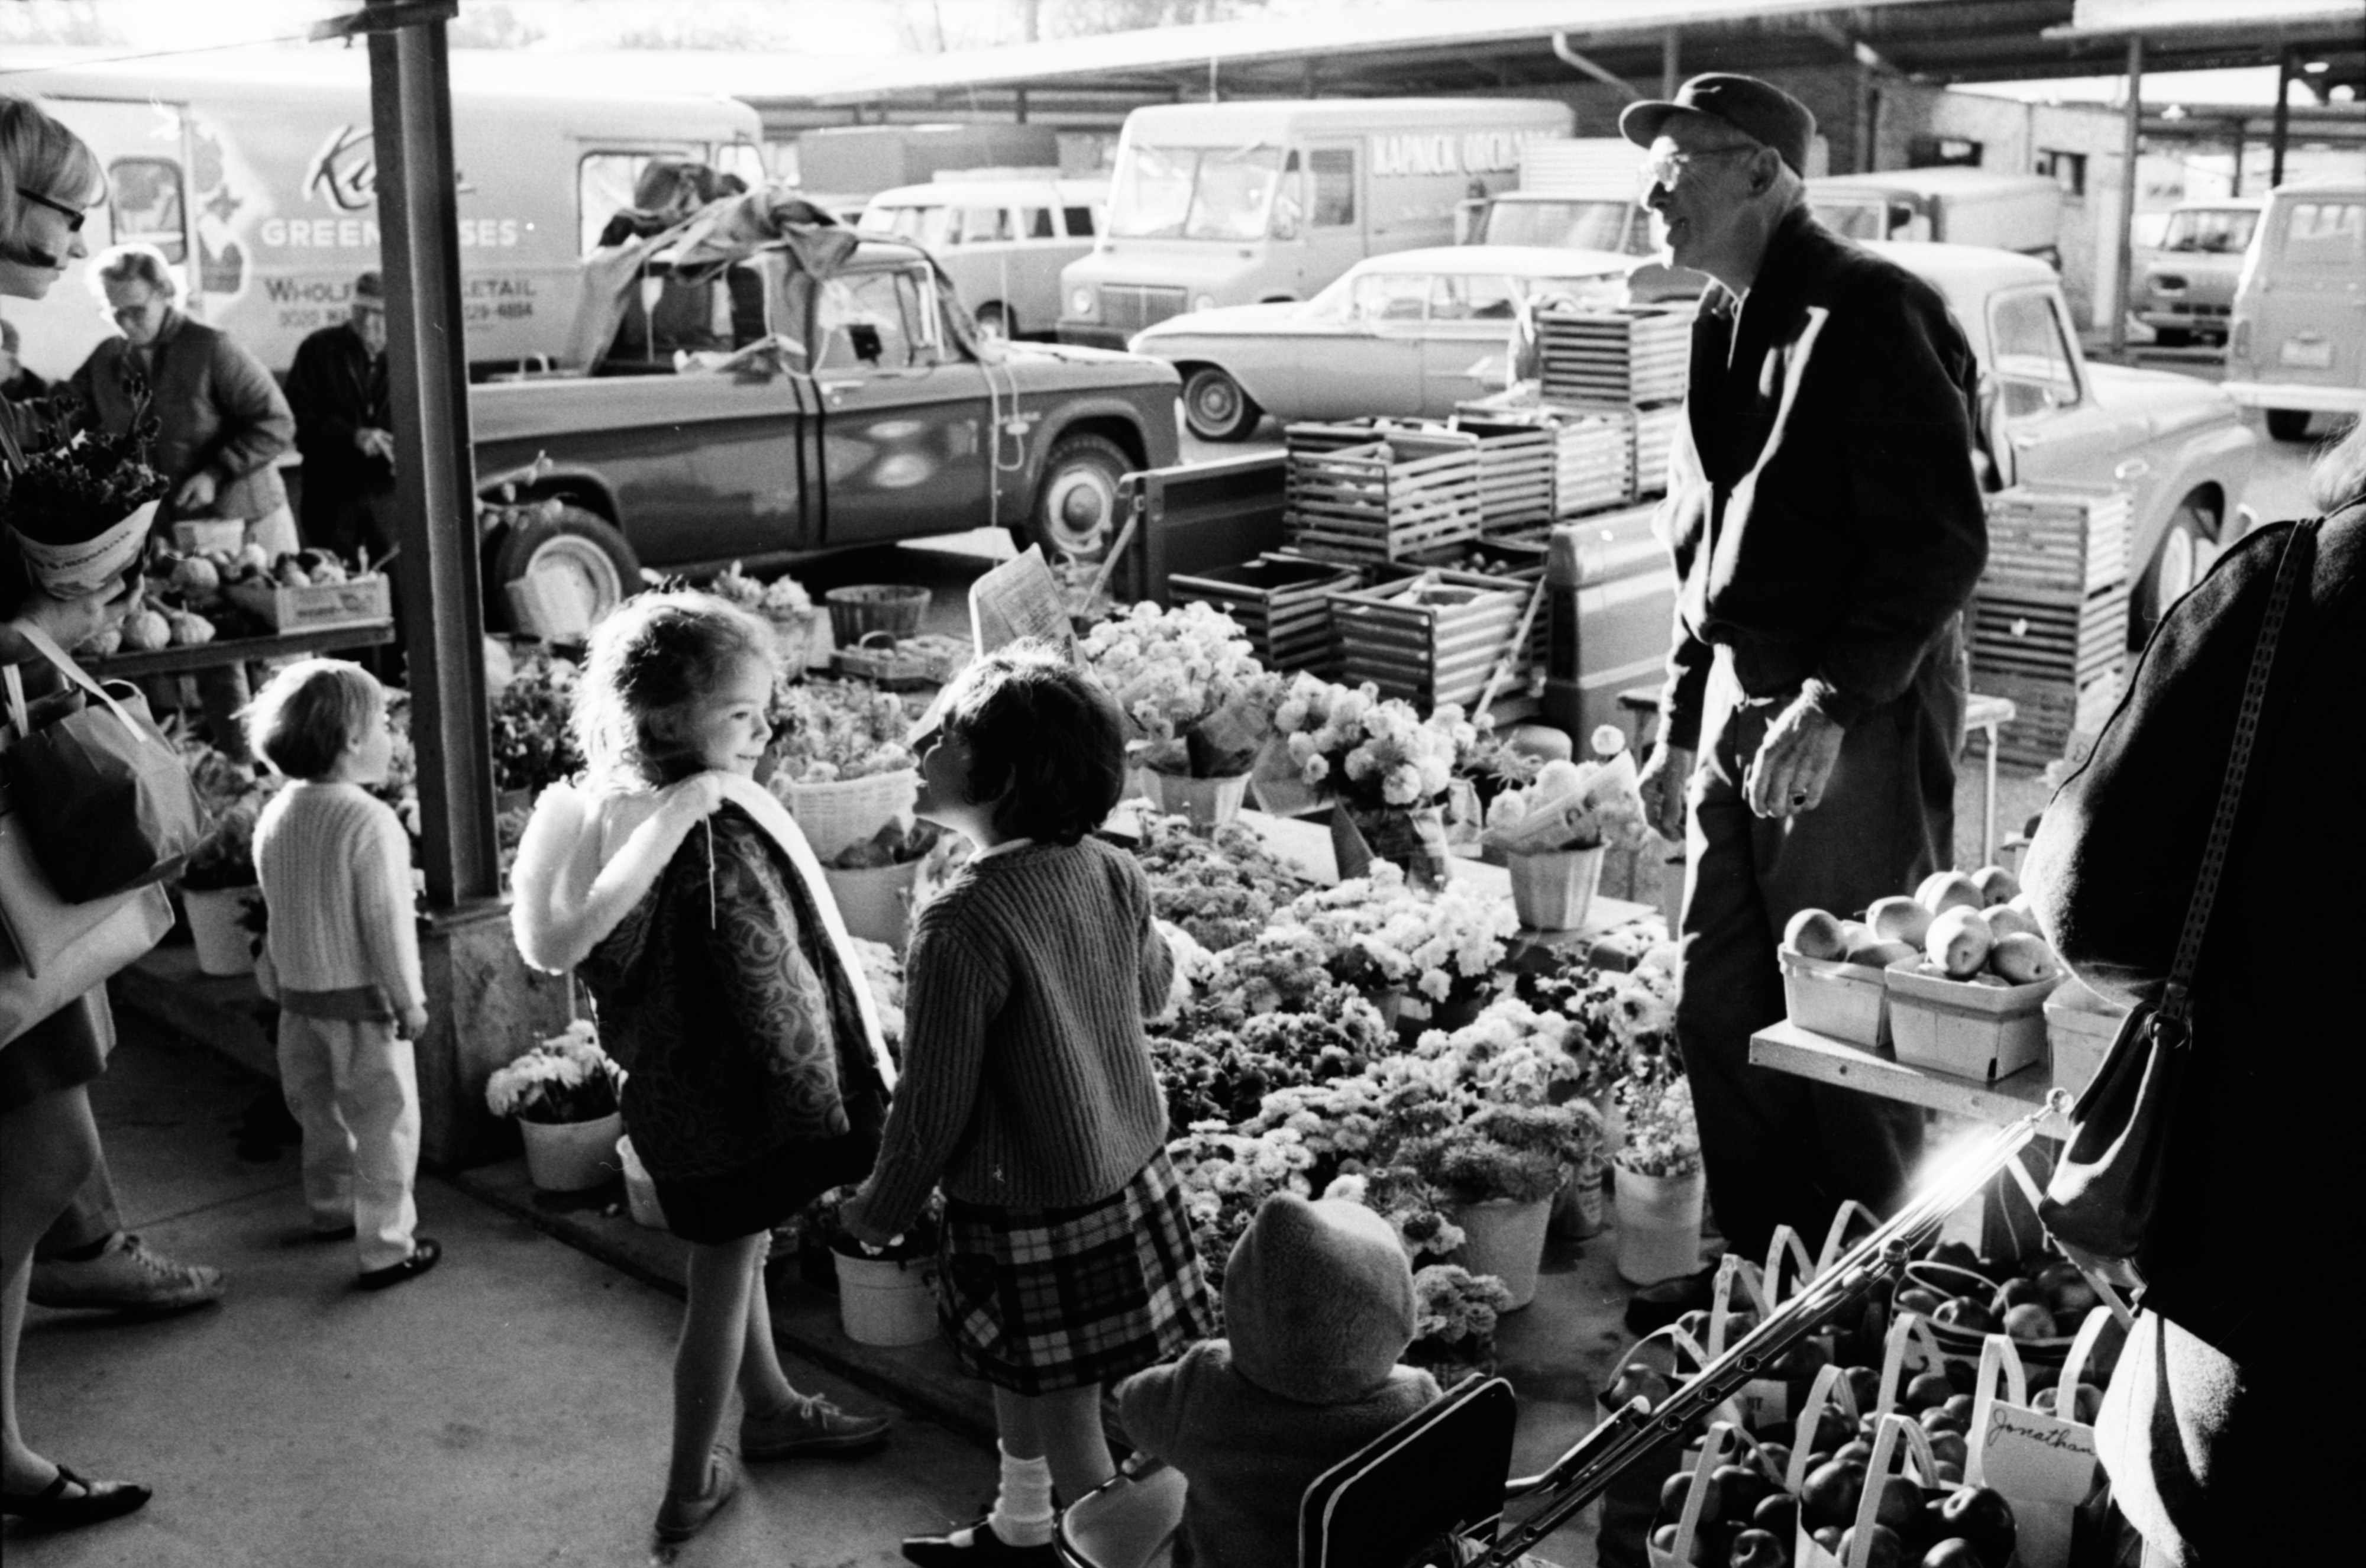 Kids Enjoying A Flower Stall at the Ann Arbor Farmers Market, October 1968 image